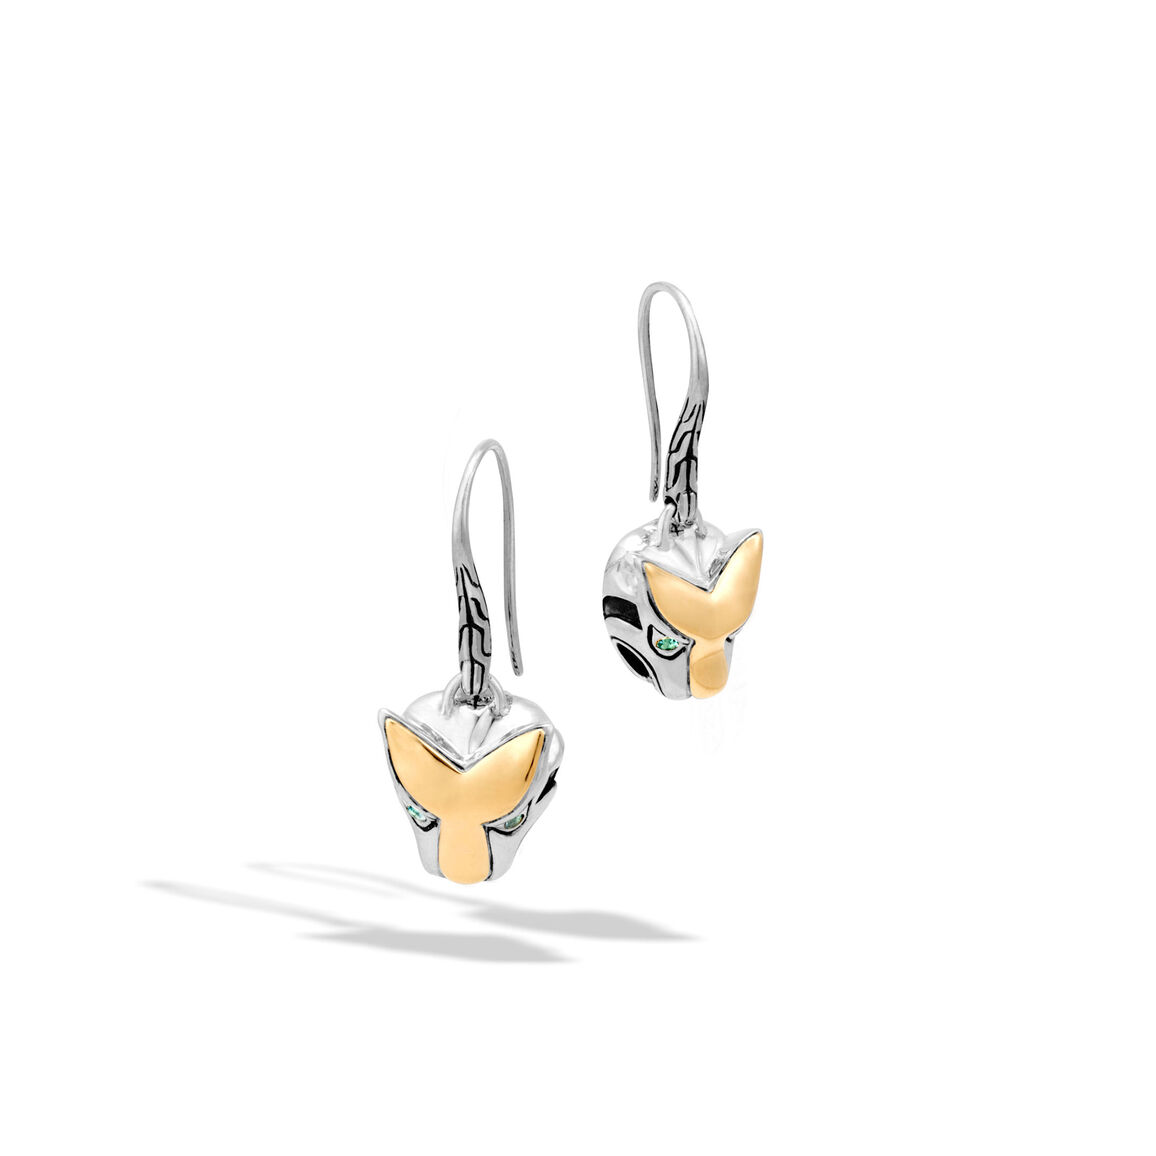 Legends Macan Drop Earring in Silver and 18K Gold